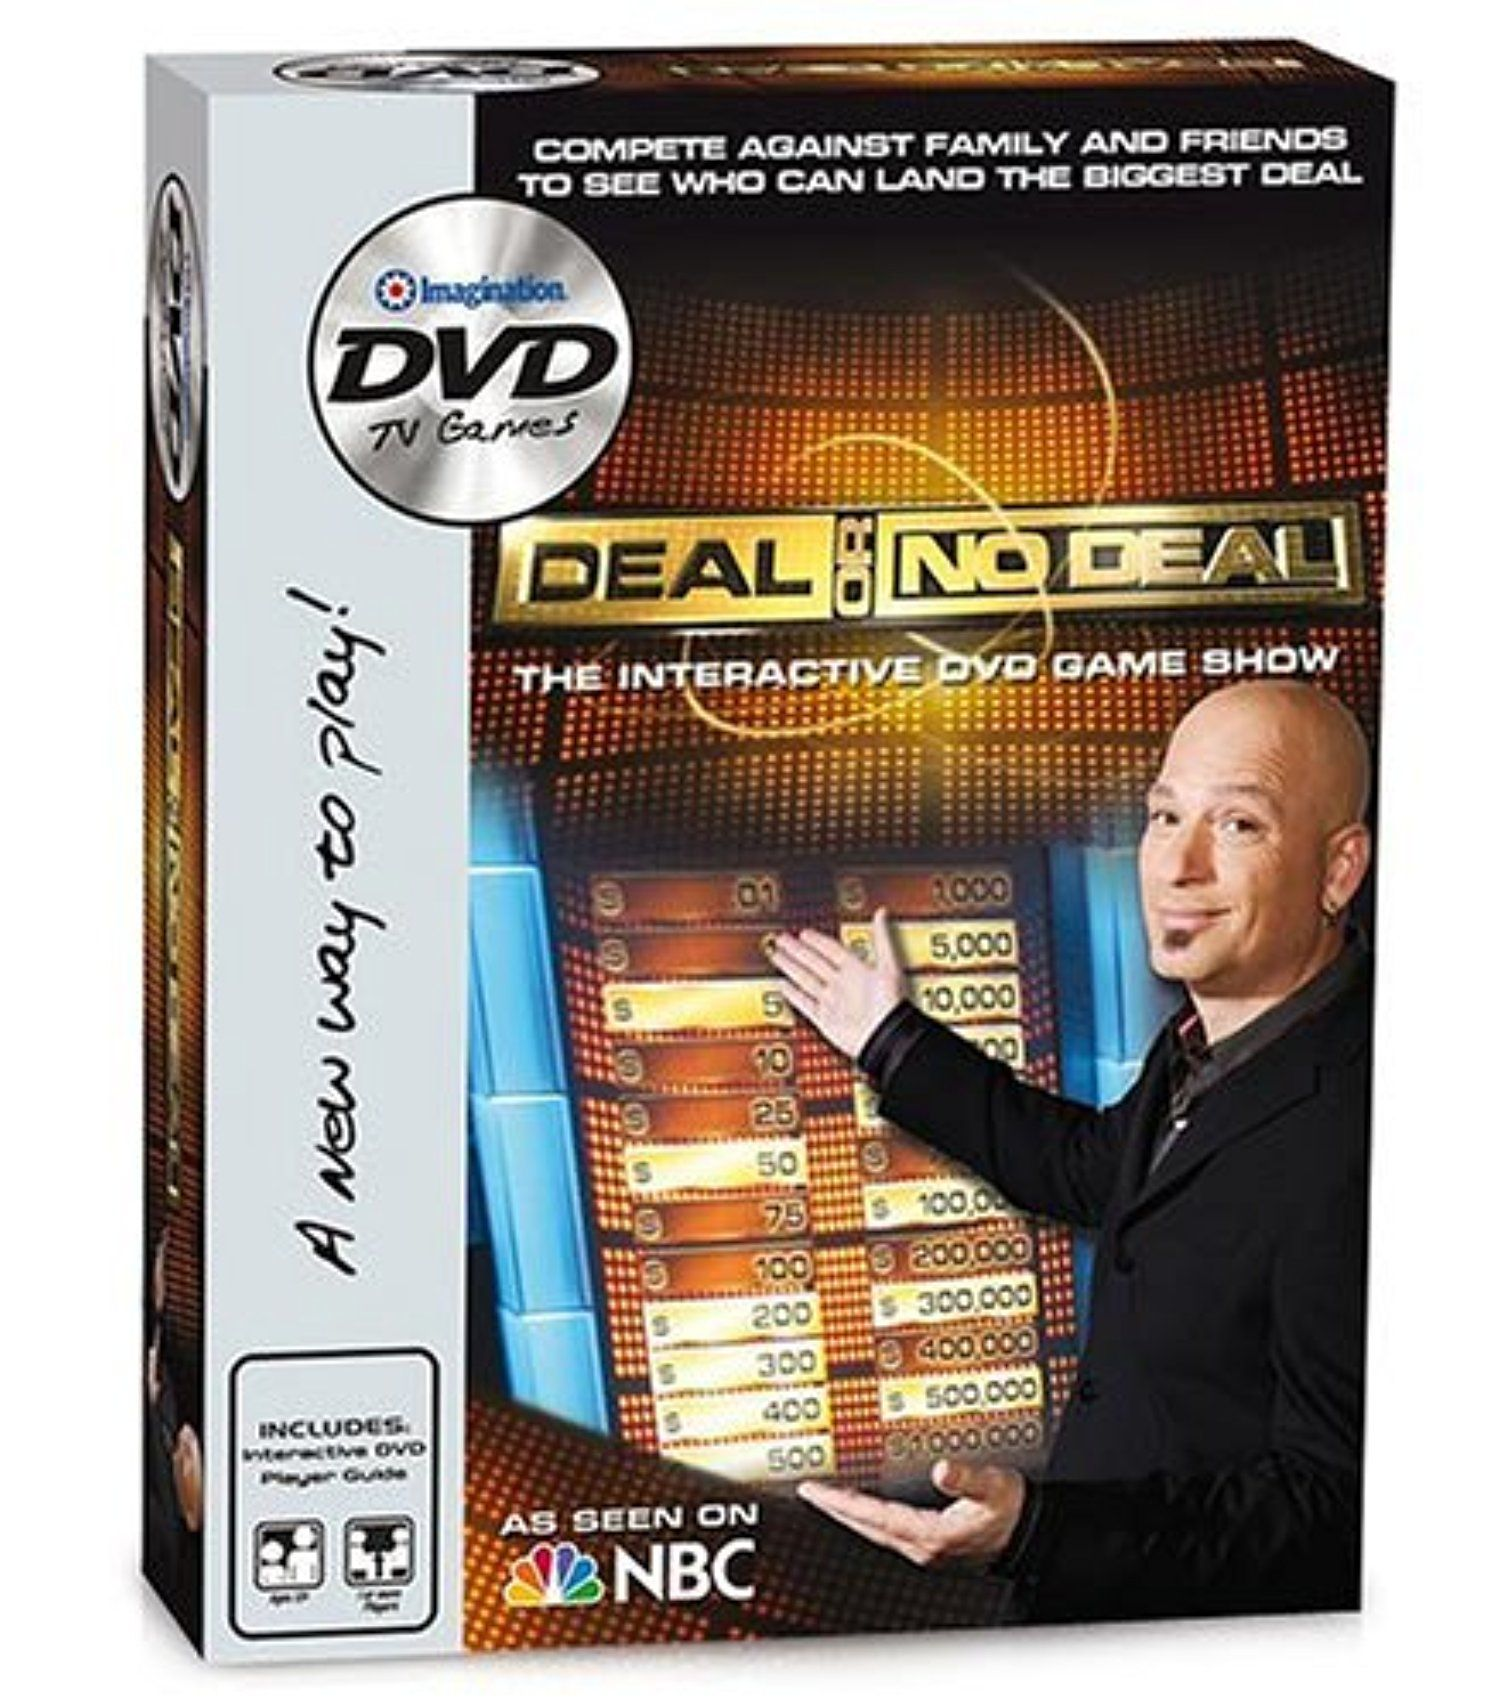 Deal or no deal dvd game by imagination entertainment